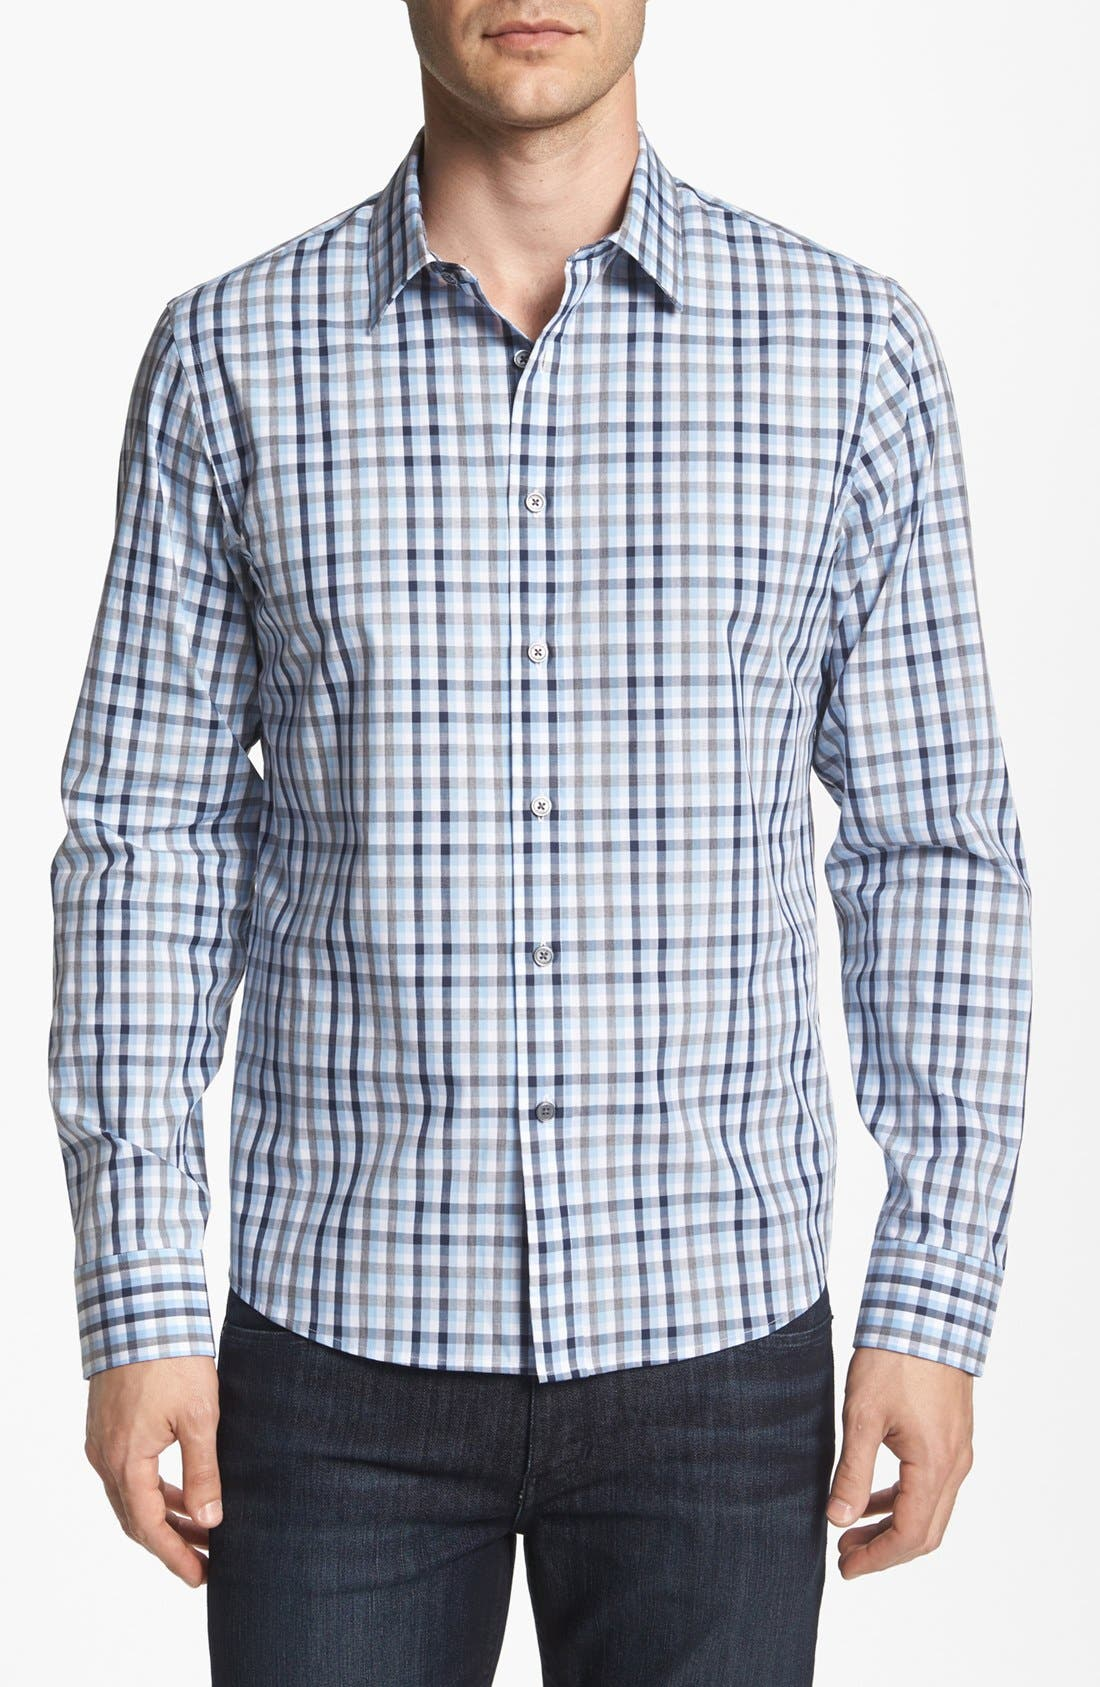 Main Image - Michael Kors Regular Fit Sport Shirt